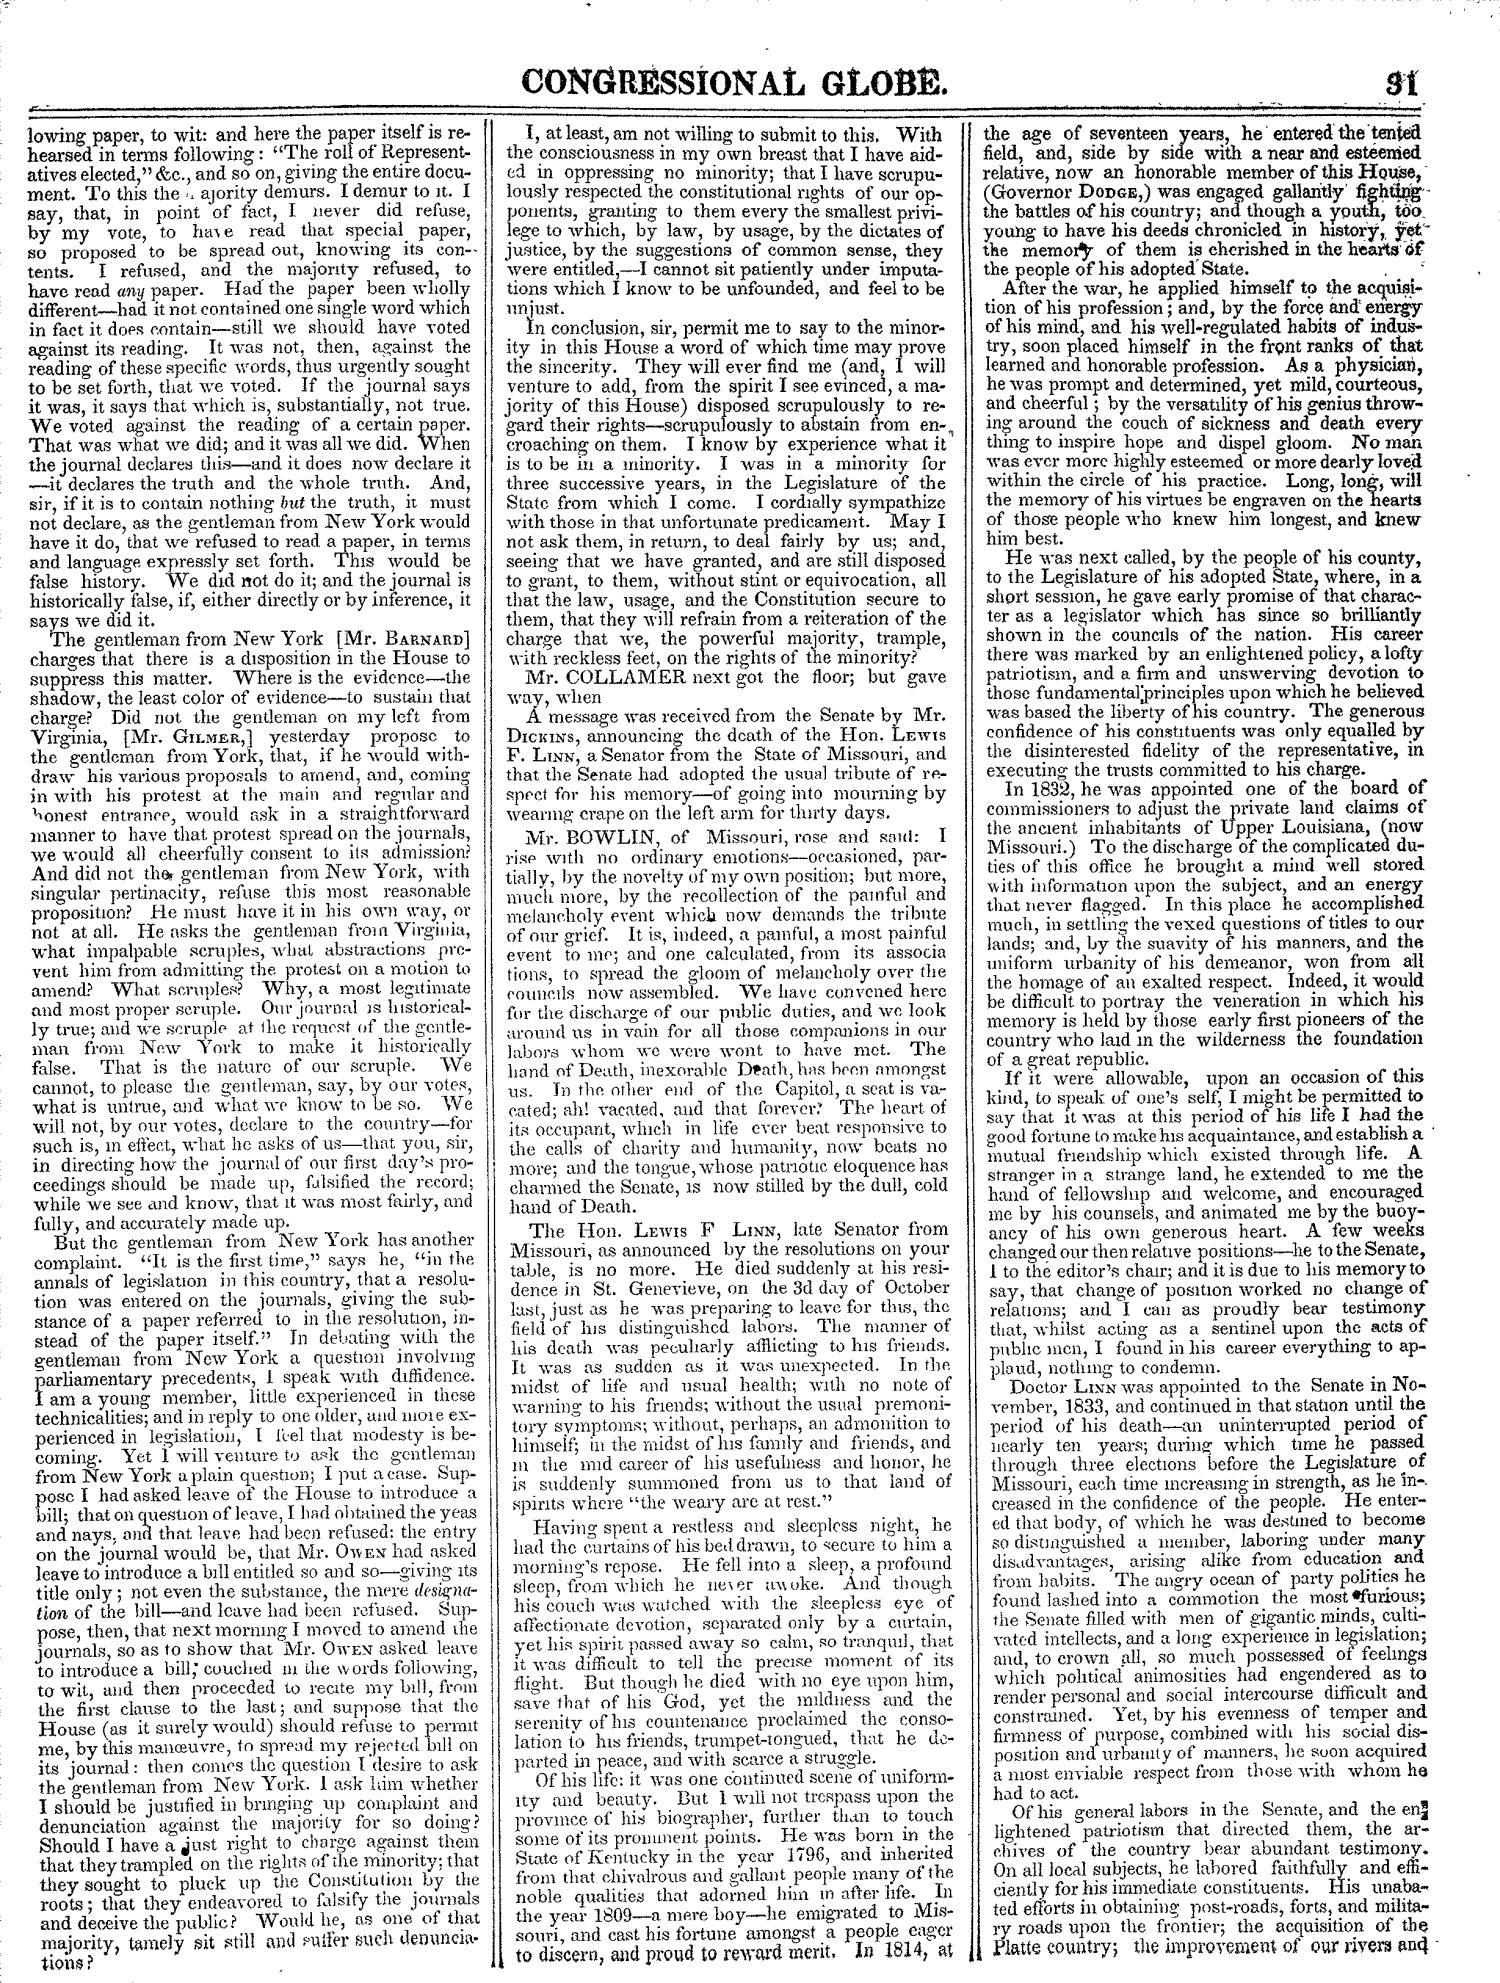 The Congressional Globe, Volume 13, Part 1: Twenty-Eighth Congress, First Session                                                                                                      31